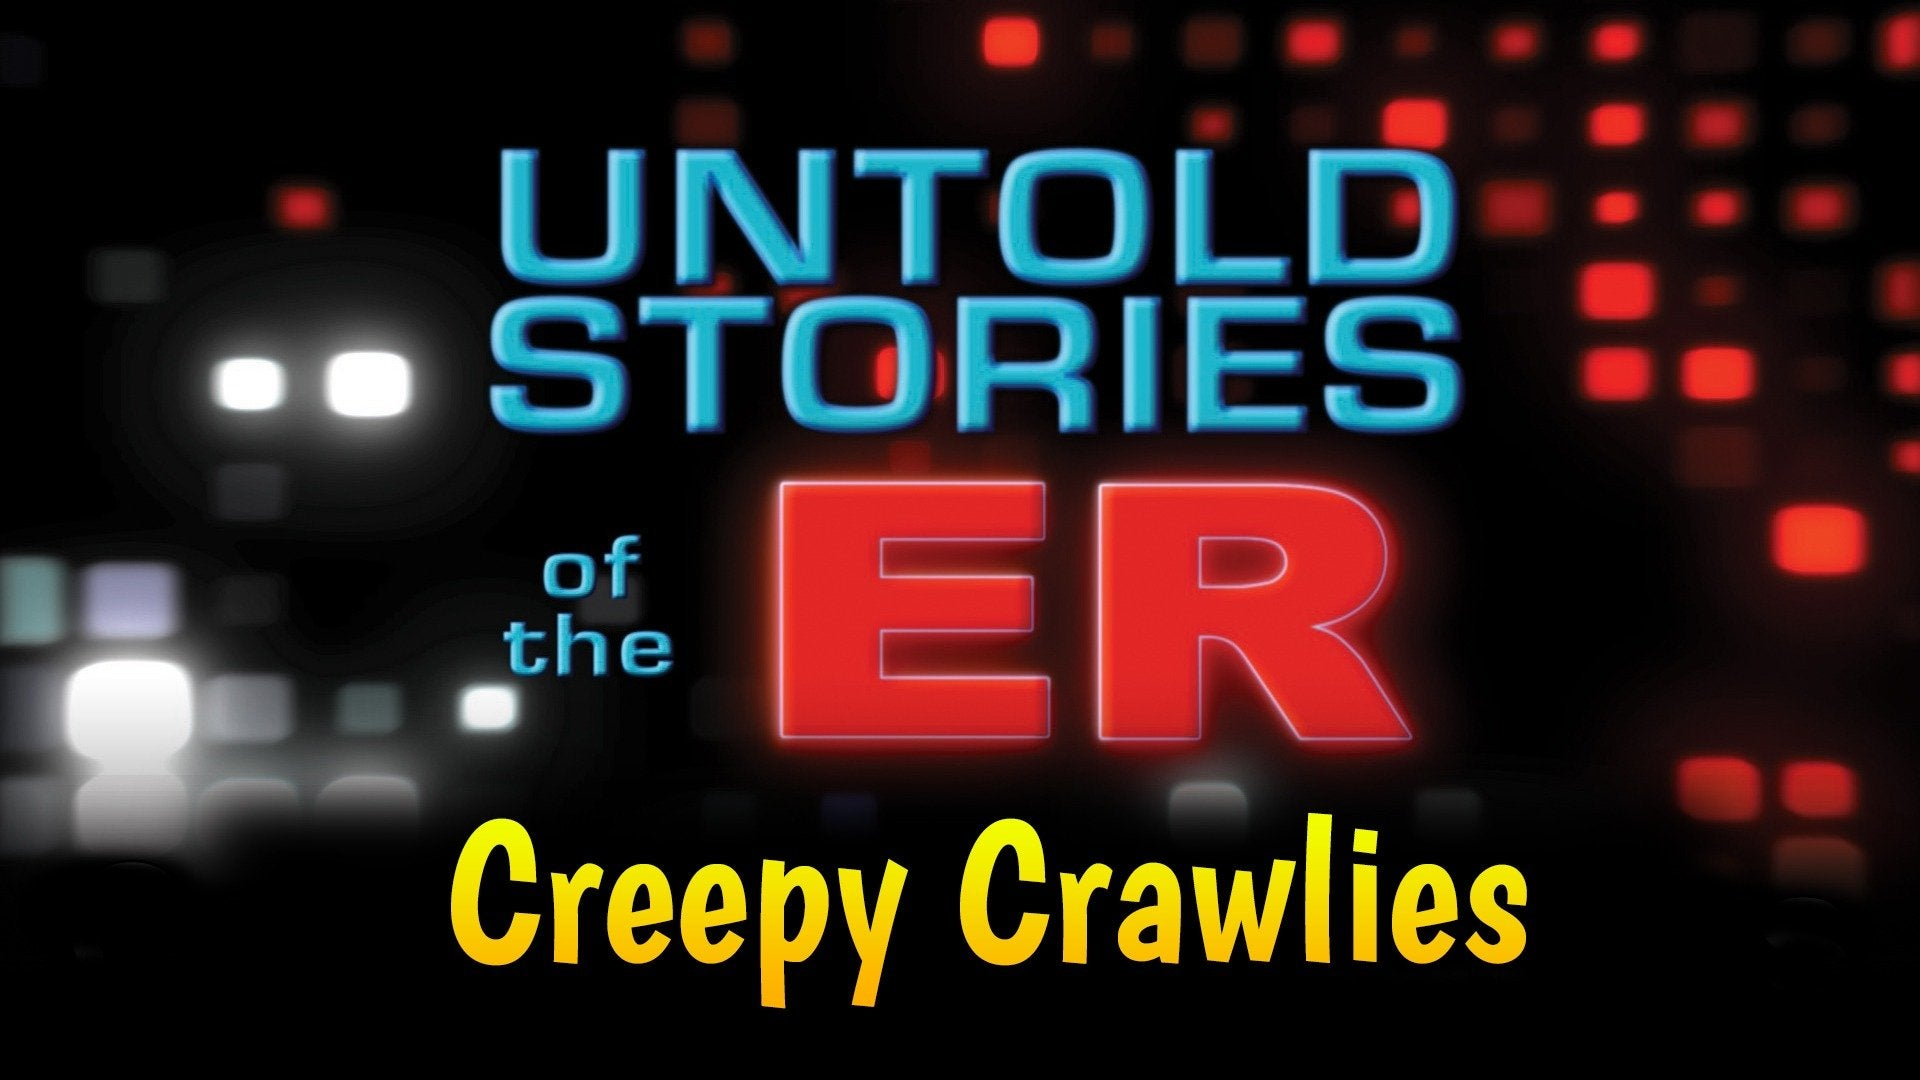 Untold Stories of the ER: Creepy Crawlies